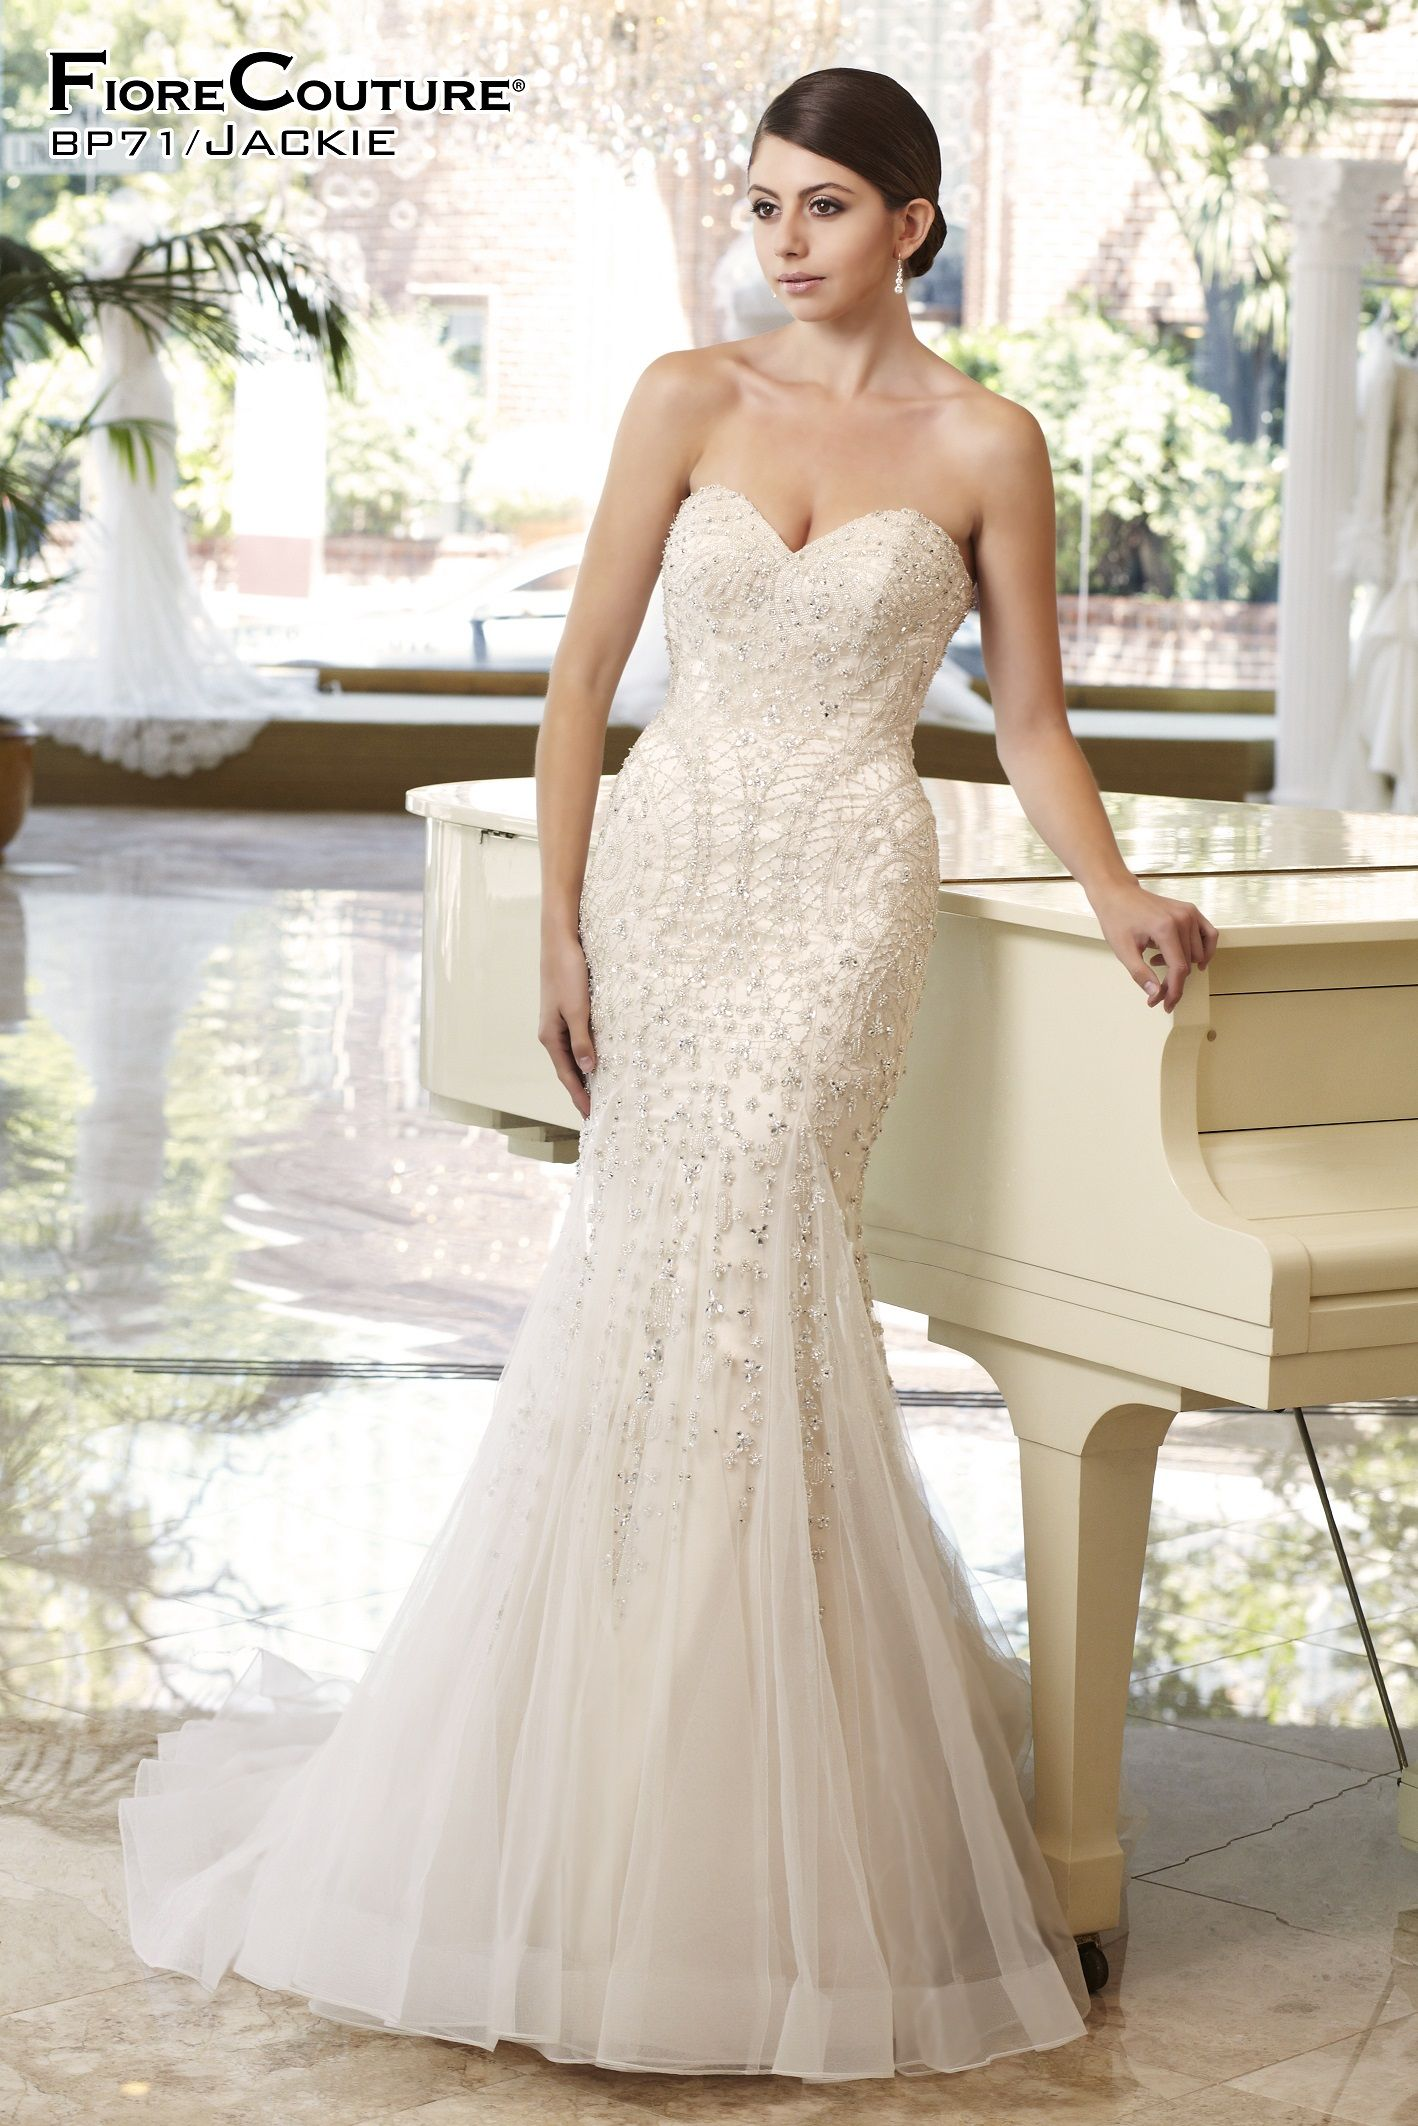 Wedding Dress Fiore Couture Jackie